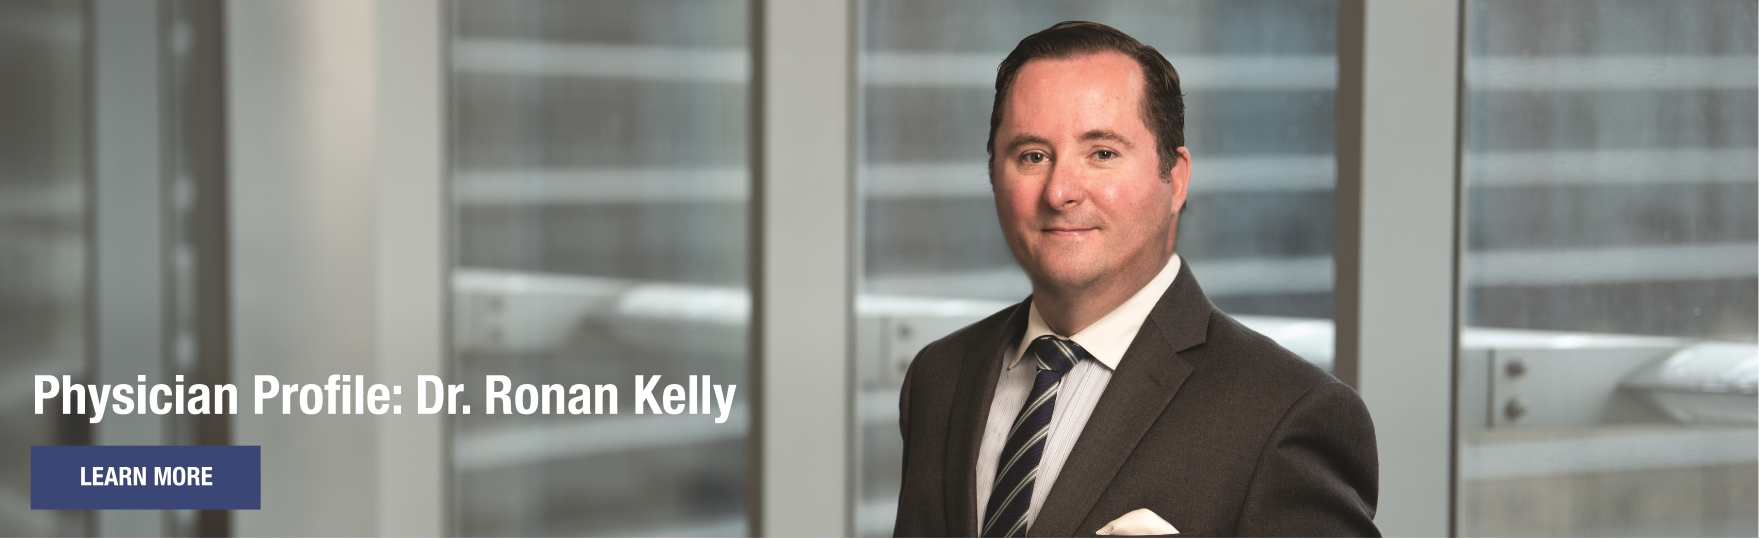 Physician Profile: Dr. Ronan Kelly